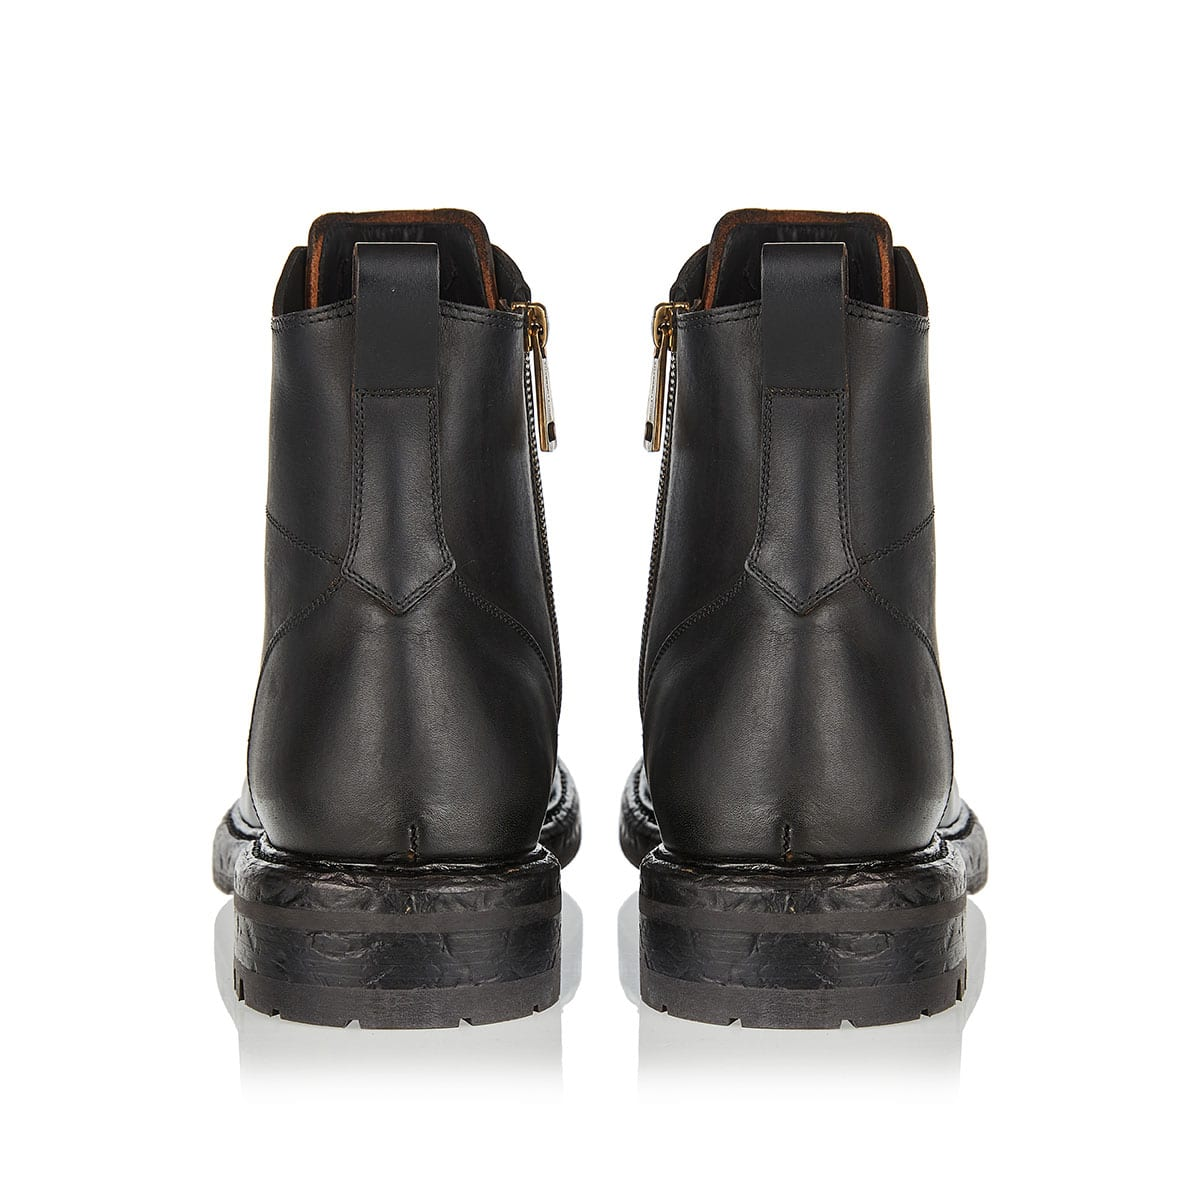 Bernini leather combat boots